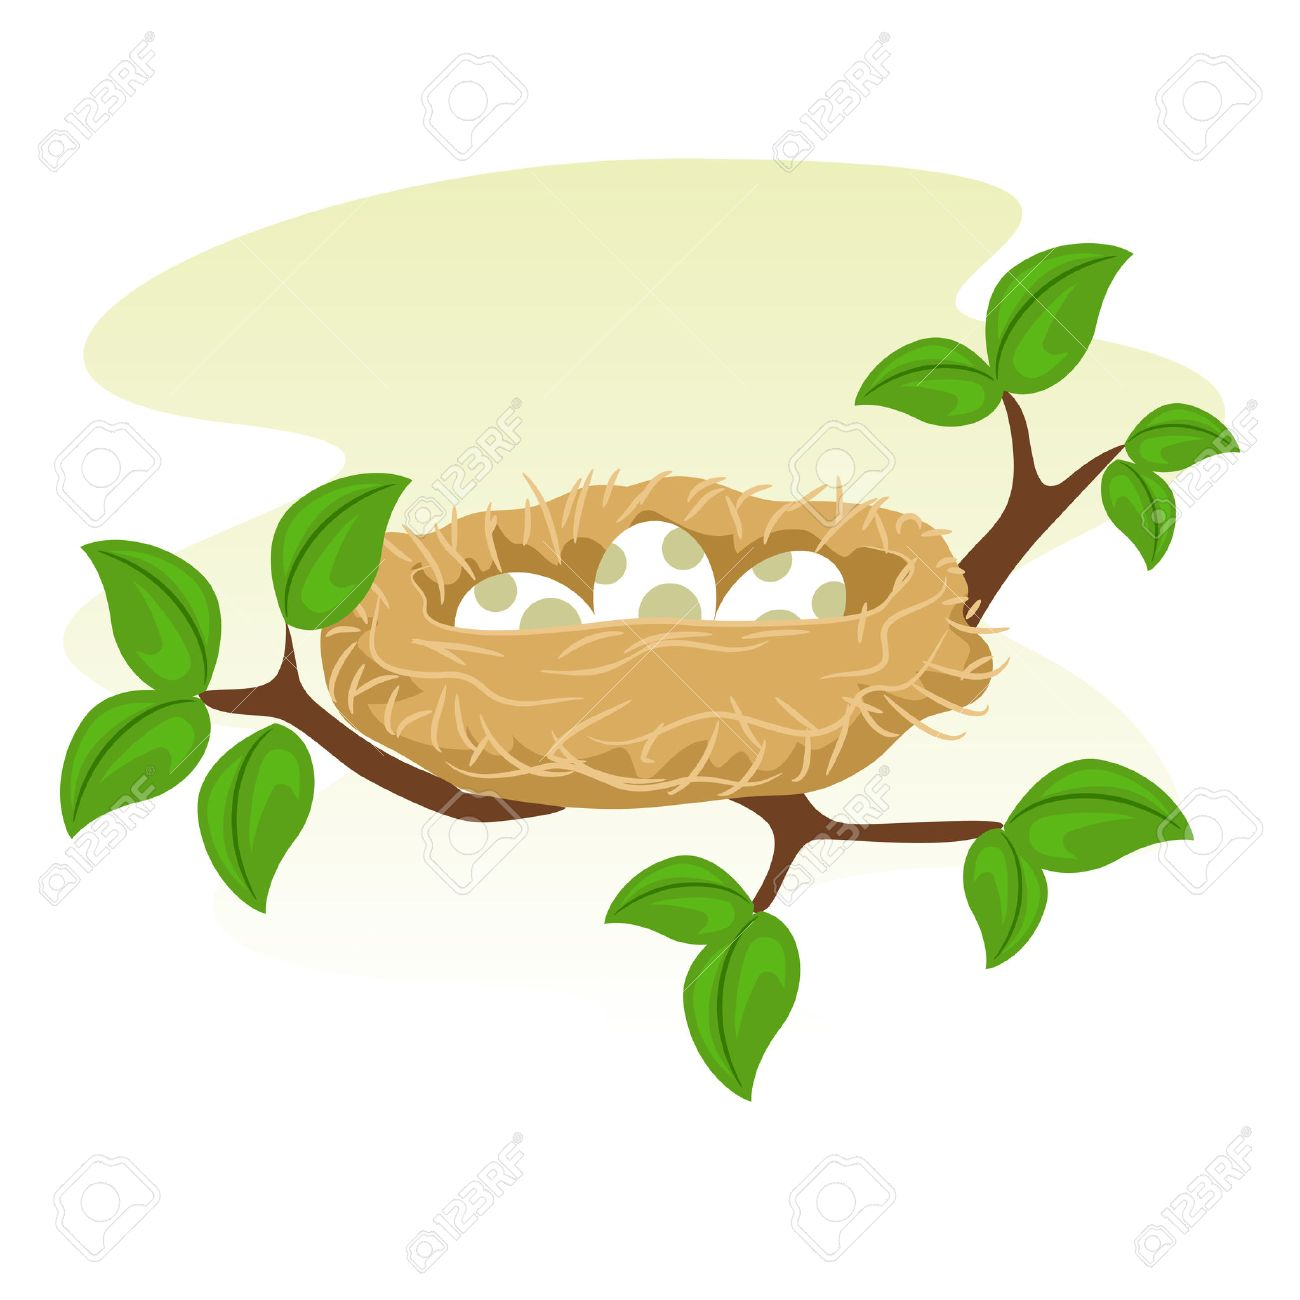 15,343 Nest Stock Vector Illustration And Royalty Free Nest Clipart.